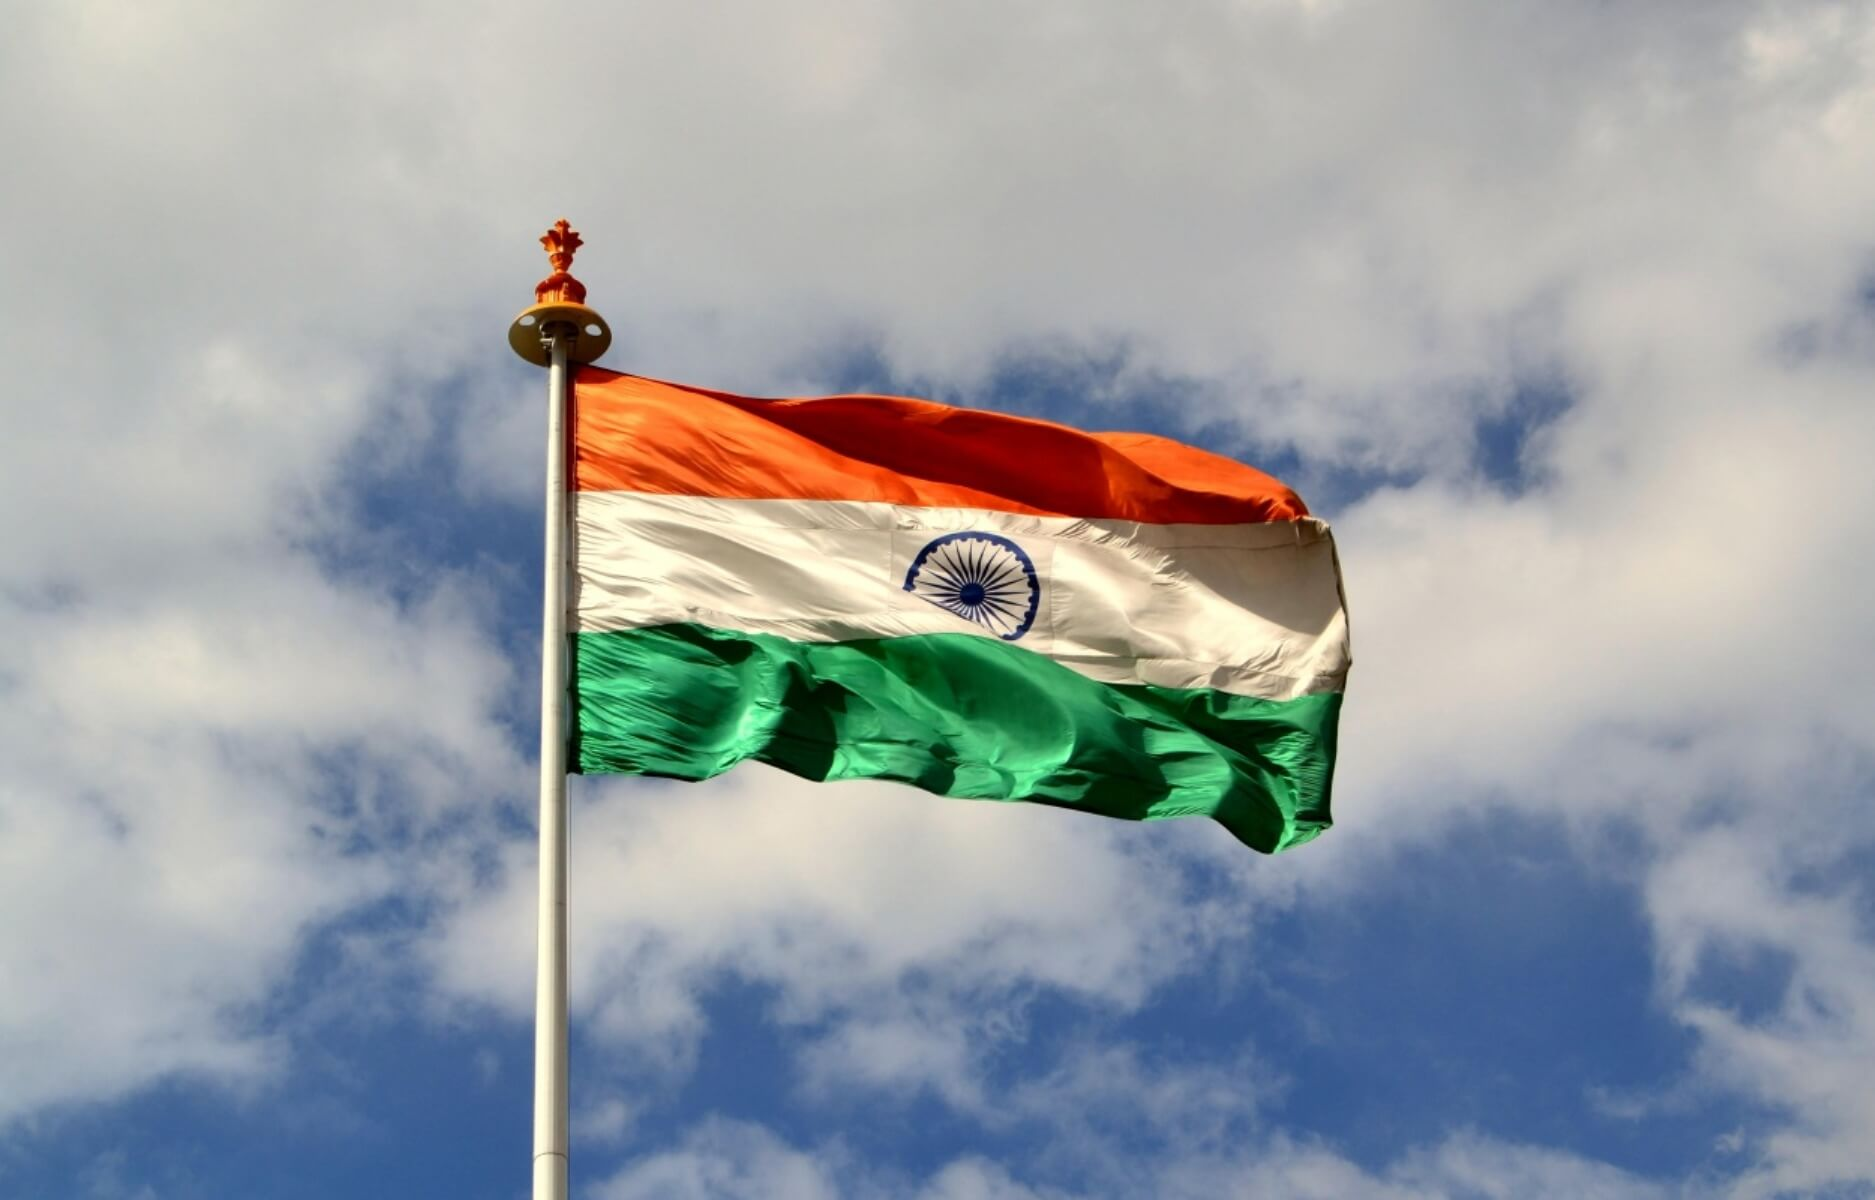 India's Obsession With Patriotism: Part 2